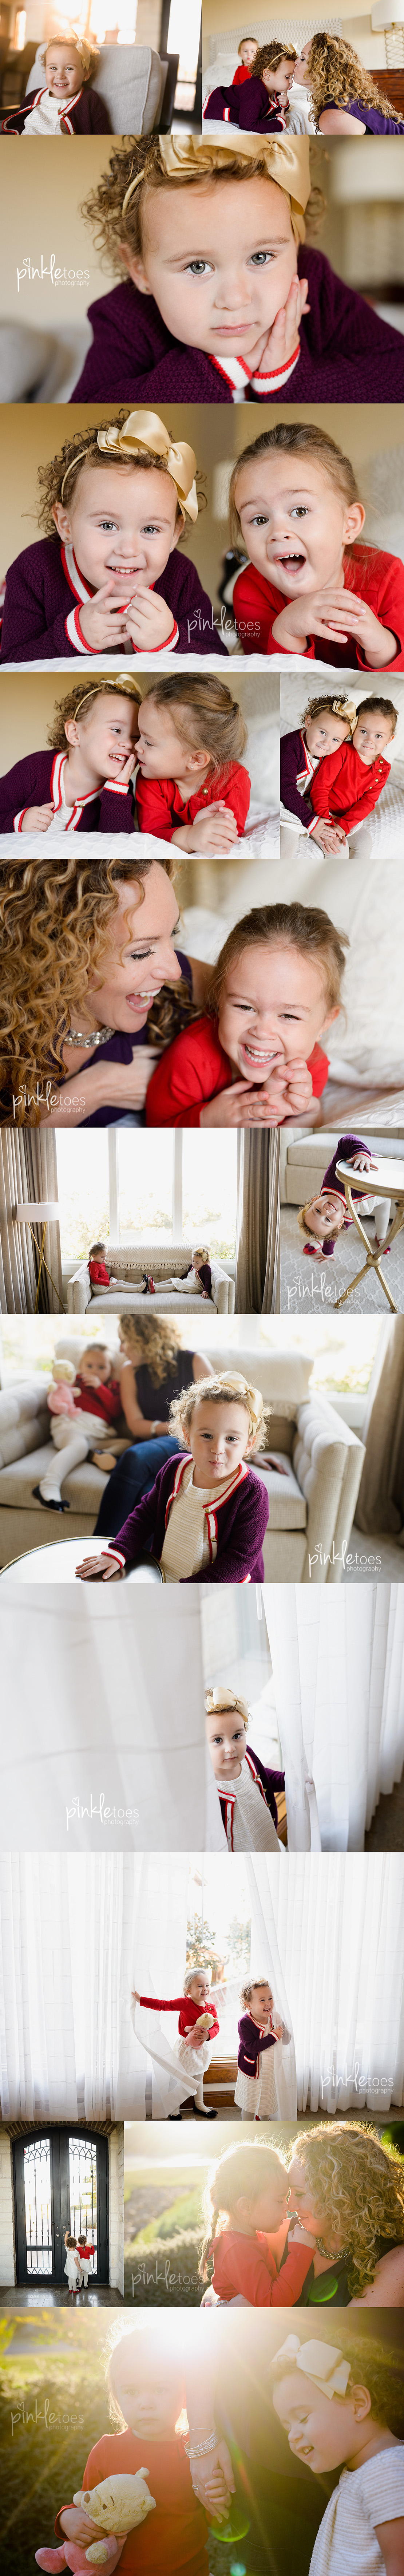 georgetown-family-kids-child-lifestyle-photographer